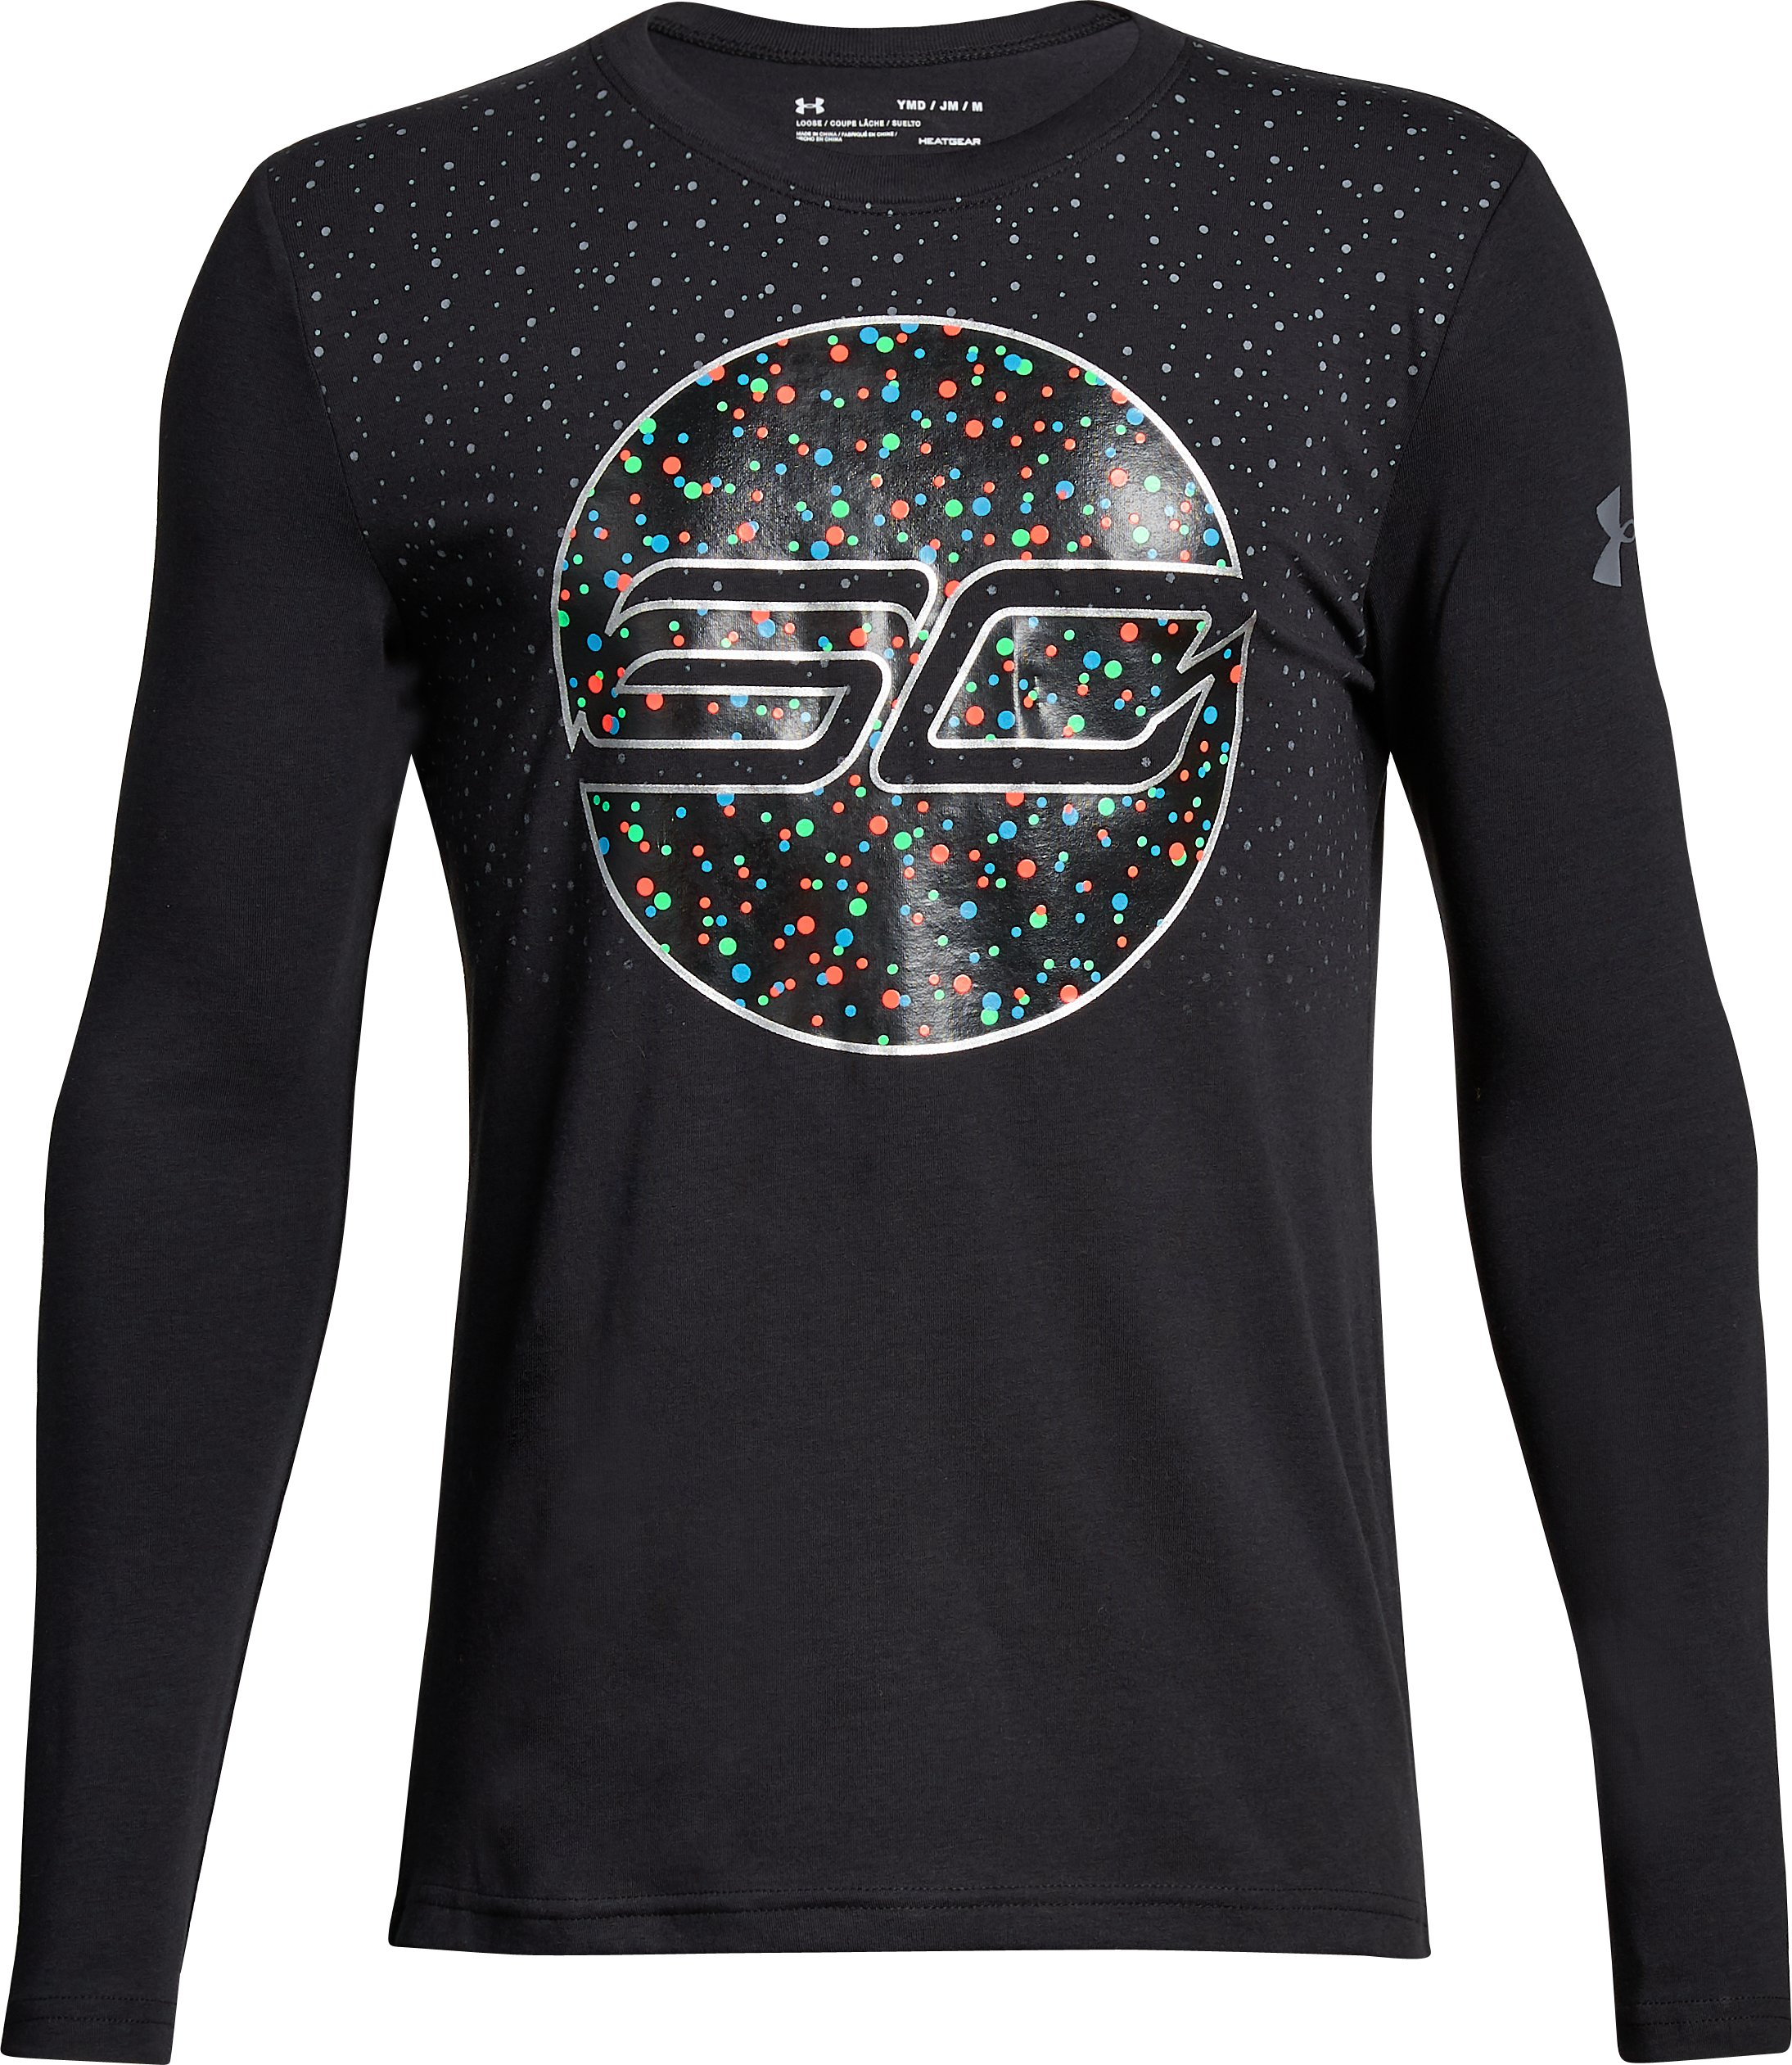 Boys' SC30 Holiday Lights Long Sleeve T-Shirt, Black